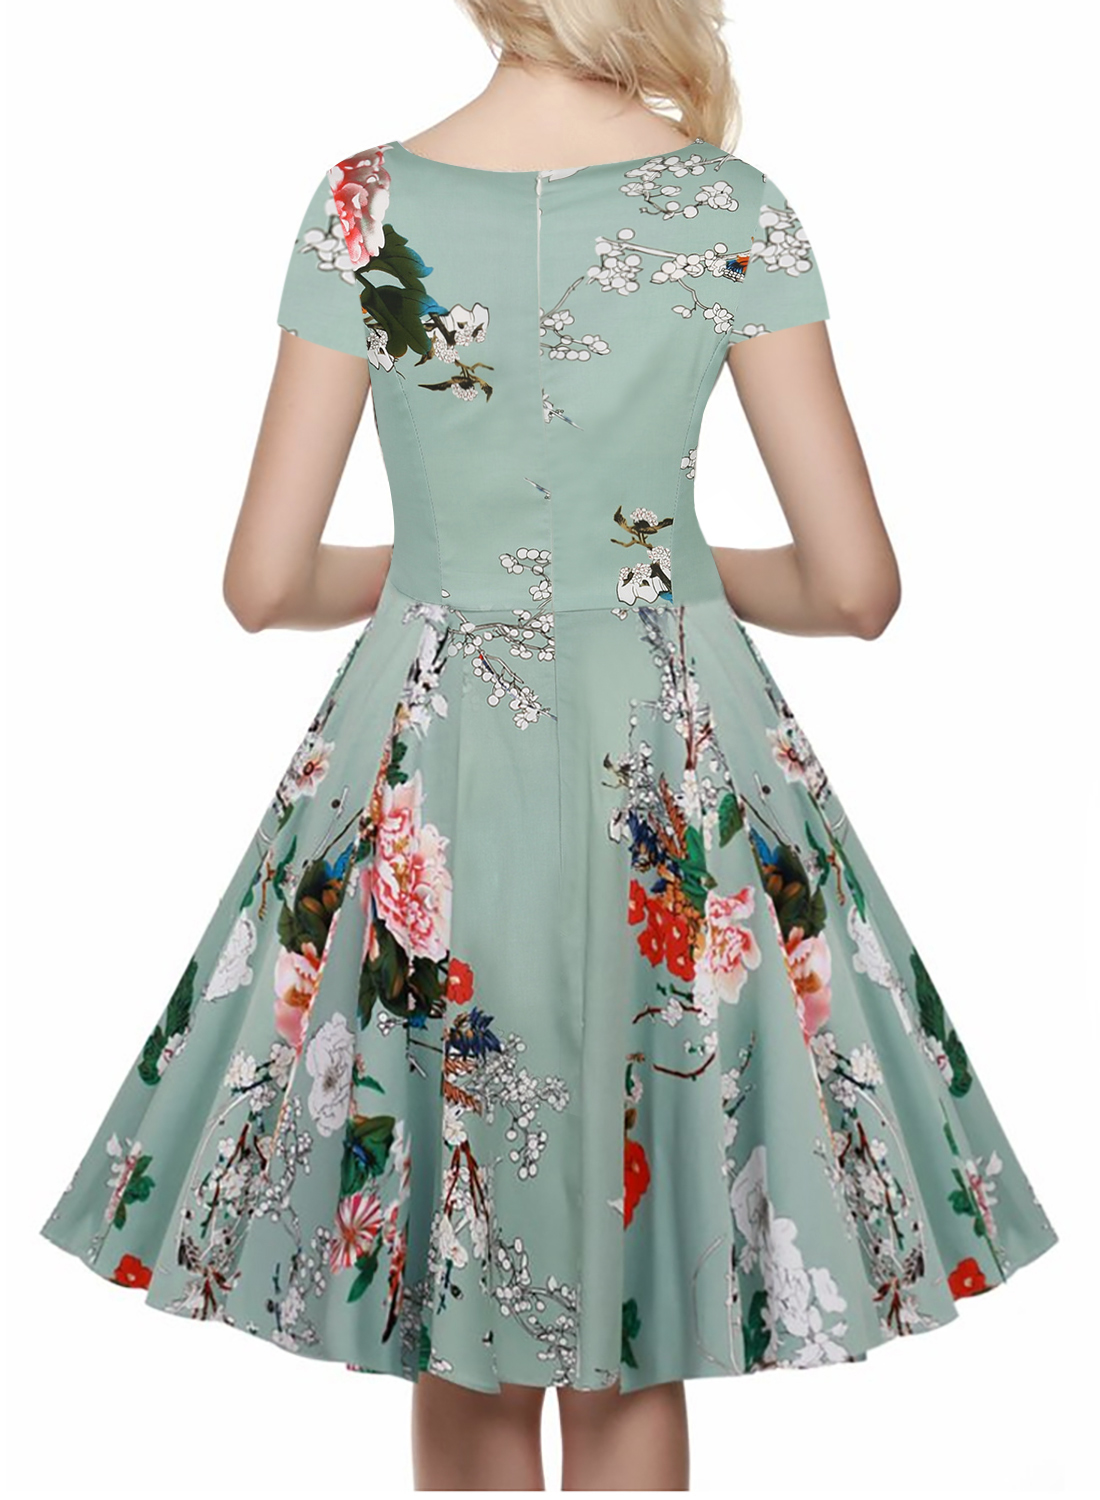 Oxiuly 2017 Women 1950s 50s 60s Vintage Rockabilly Floral Swing V ...